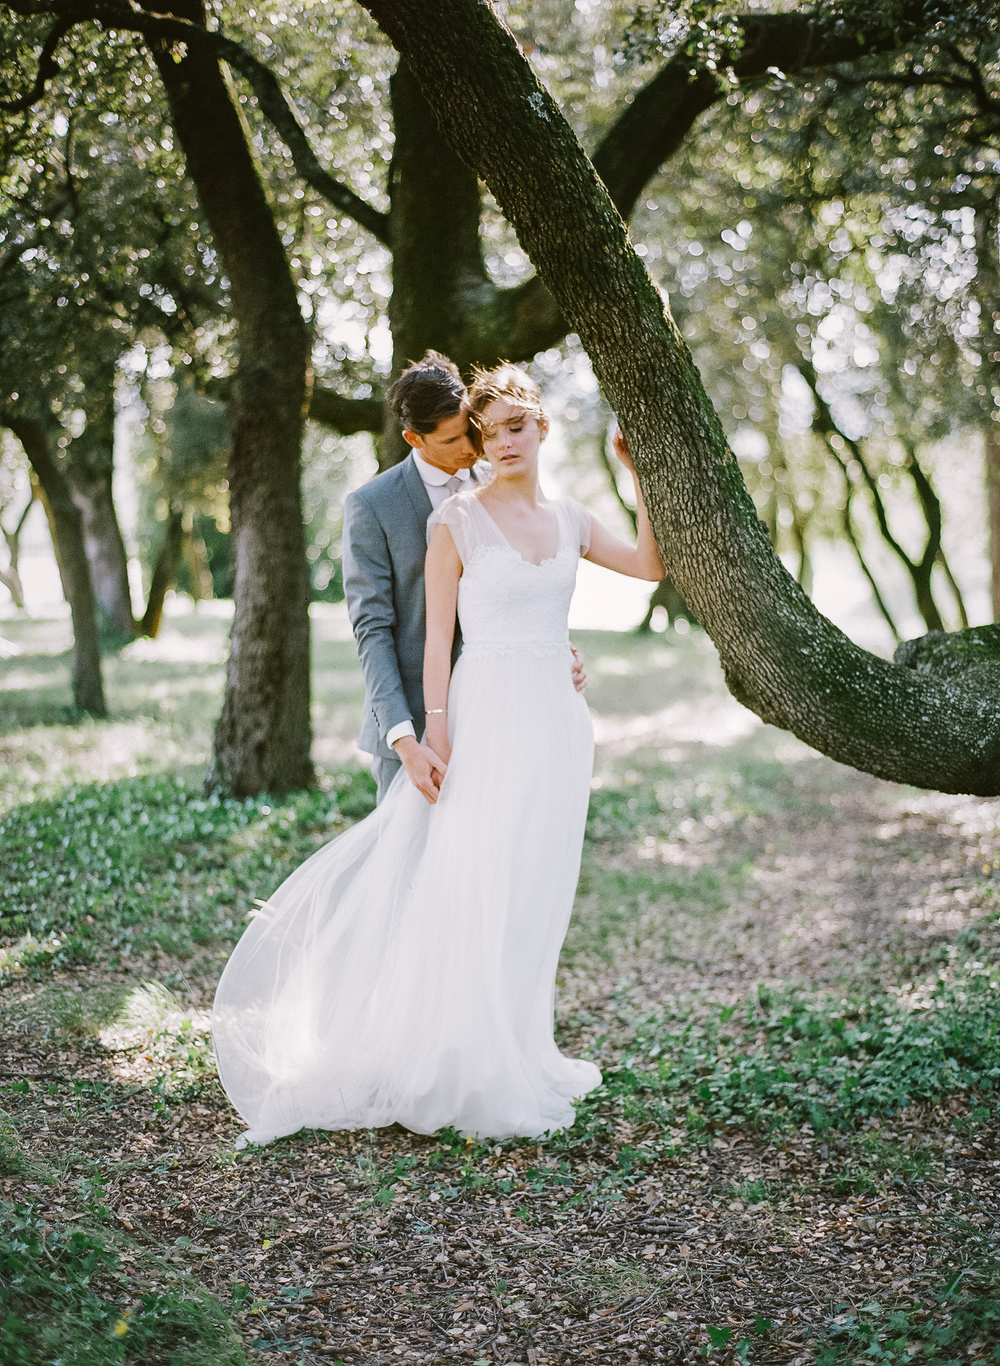 Courtney_Elizabeth_Media_France_Elopement_Light_Workshop-028.jpg